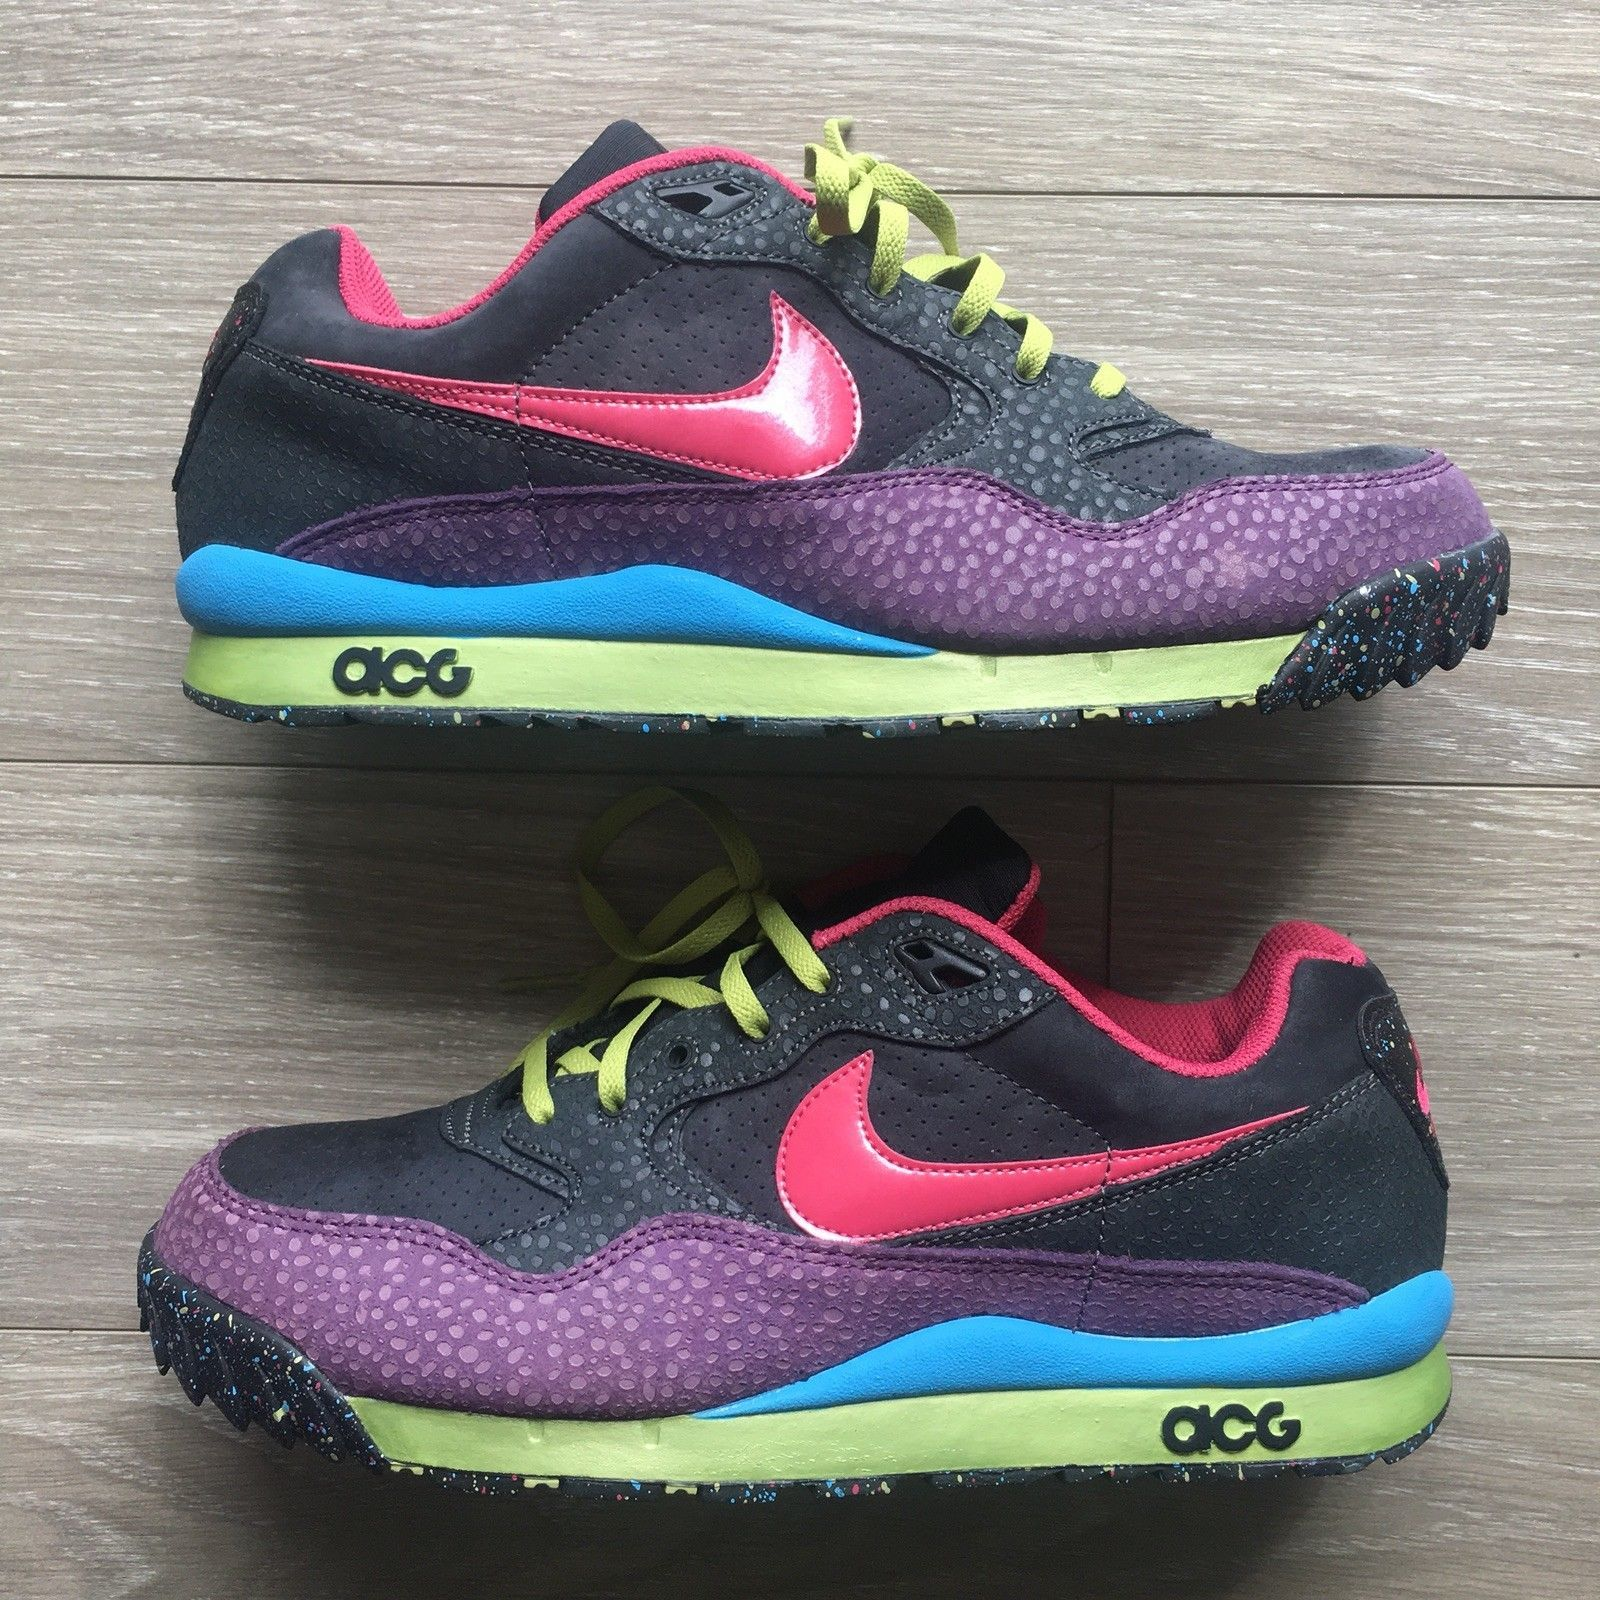 Nike Air Wildwood Supreme ACG Urbun Night Pack 329890 561